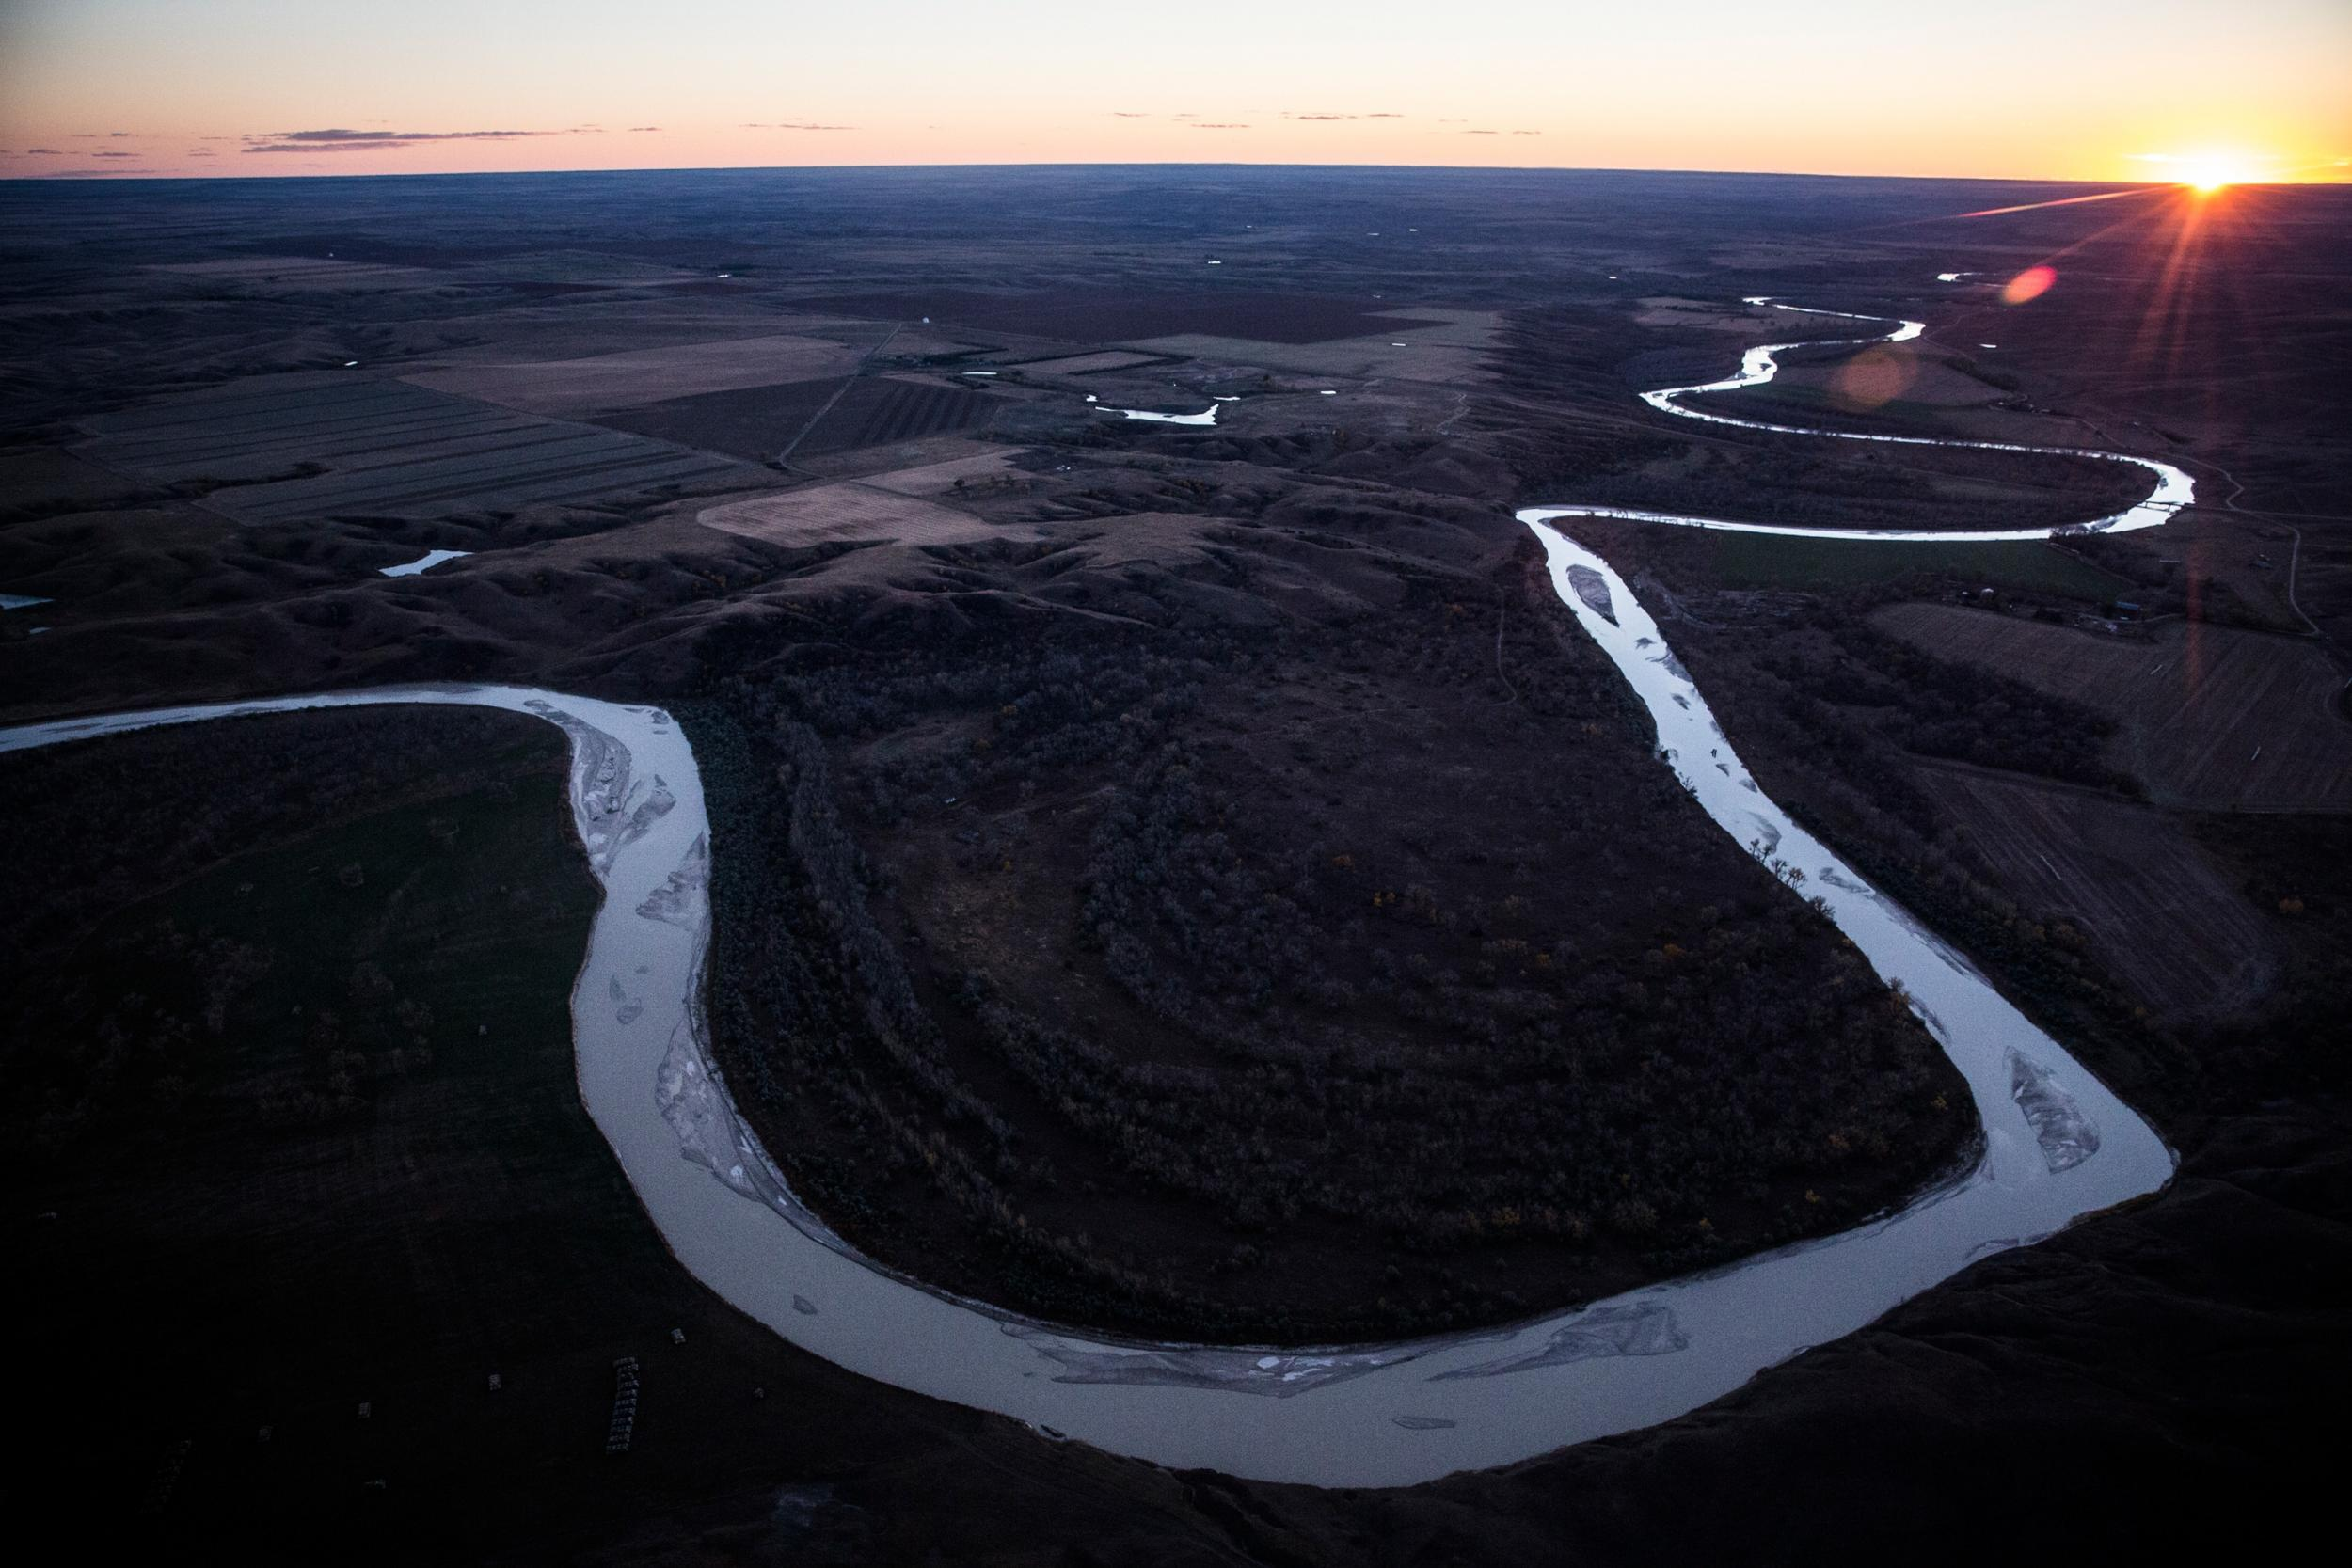 Keystone XL pipeline: Judge halts construction and says Trump administration 'simply discarded' environmental impact